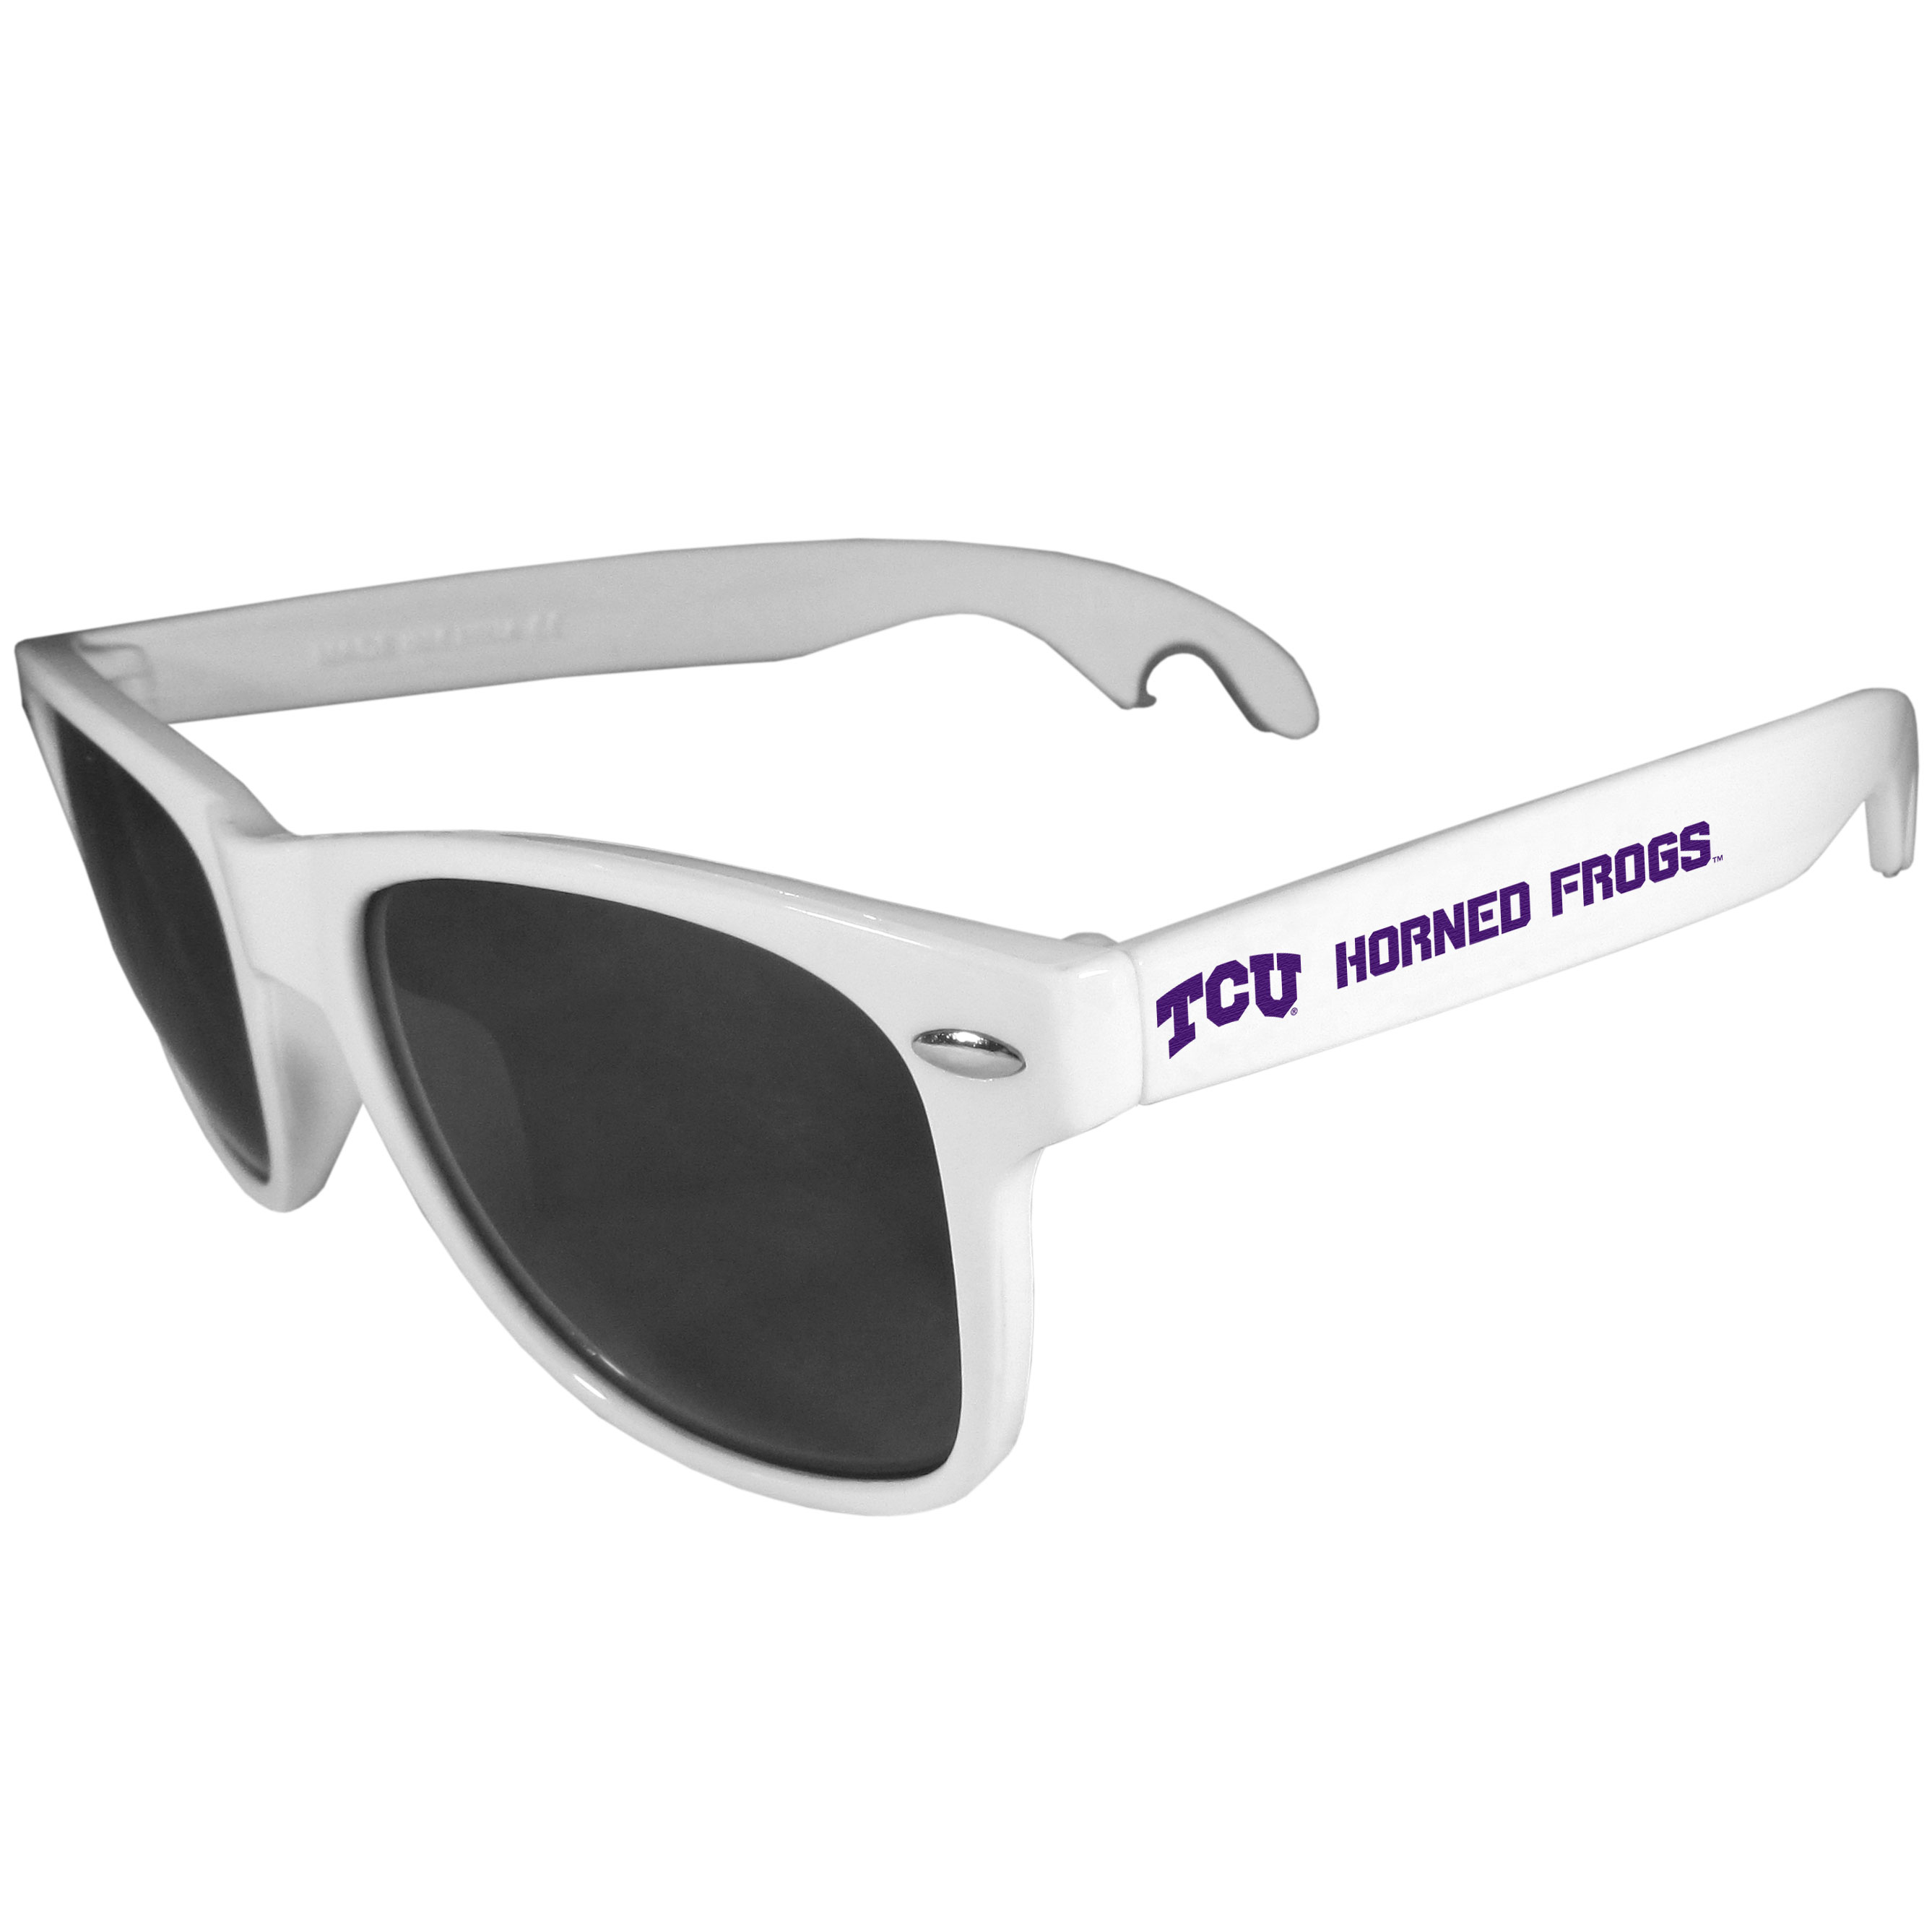 TCU Horned Frogs Beachfarer Bottle Opener Sunglasses, White - Seriously, these sunglasses open bottles! Keep the party going with these amazing TCU Horned Frogs bottle opener sunglasses. The stylish retro frames feature team designs on the arms and functional bottle openers on the end of the arms. Whether you are at the beach or having a backyard BBQ on game day, these shades will keep your eyes protected with 100% UVA/UVB protection and keep you hydrated with the handy bottle opener arms.